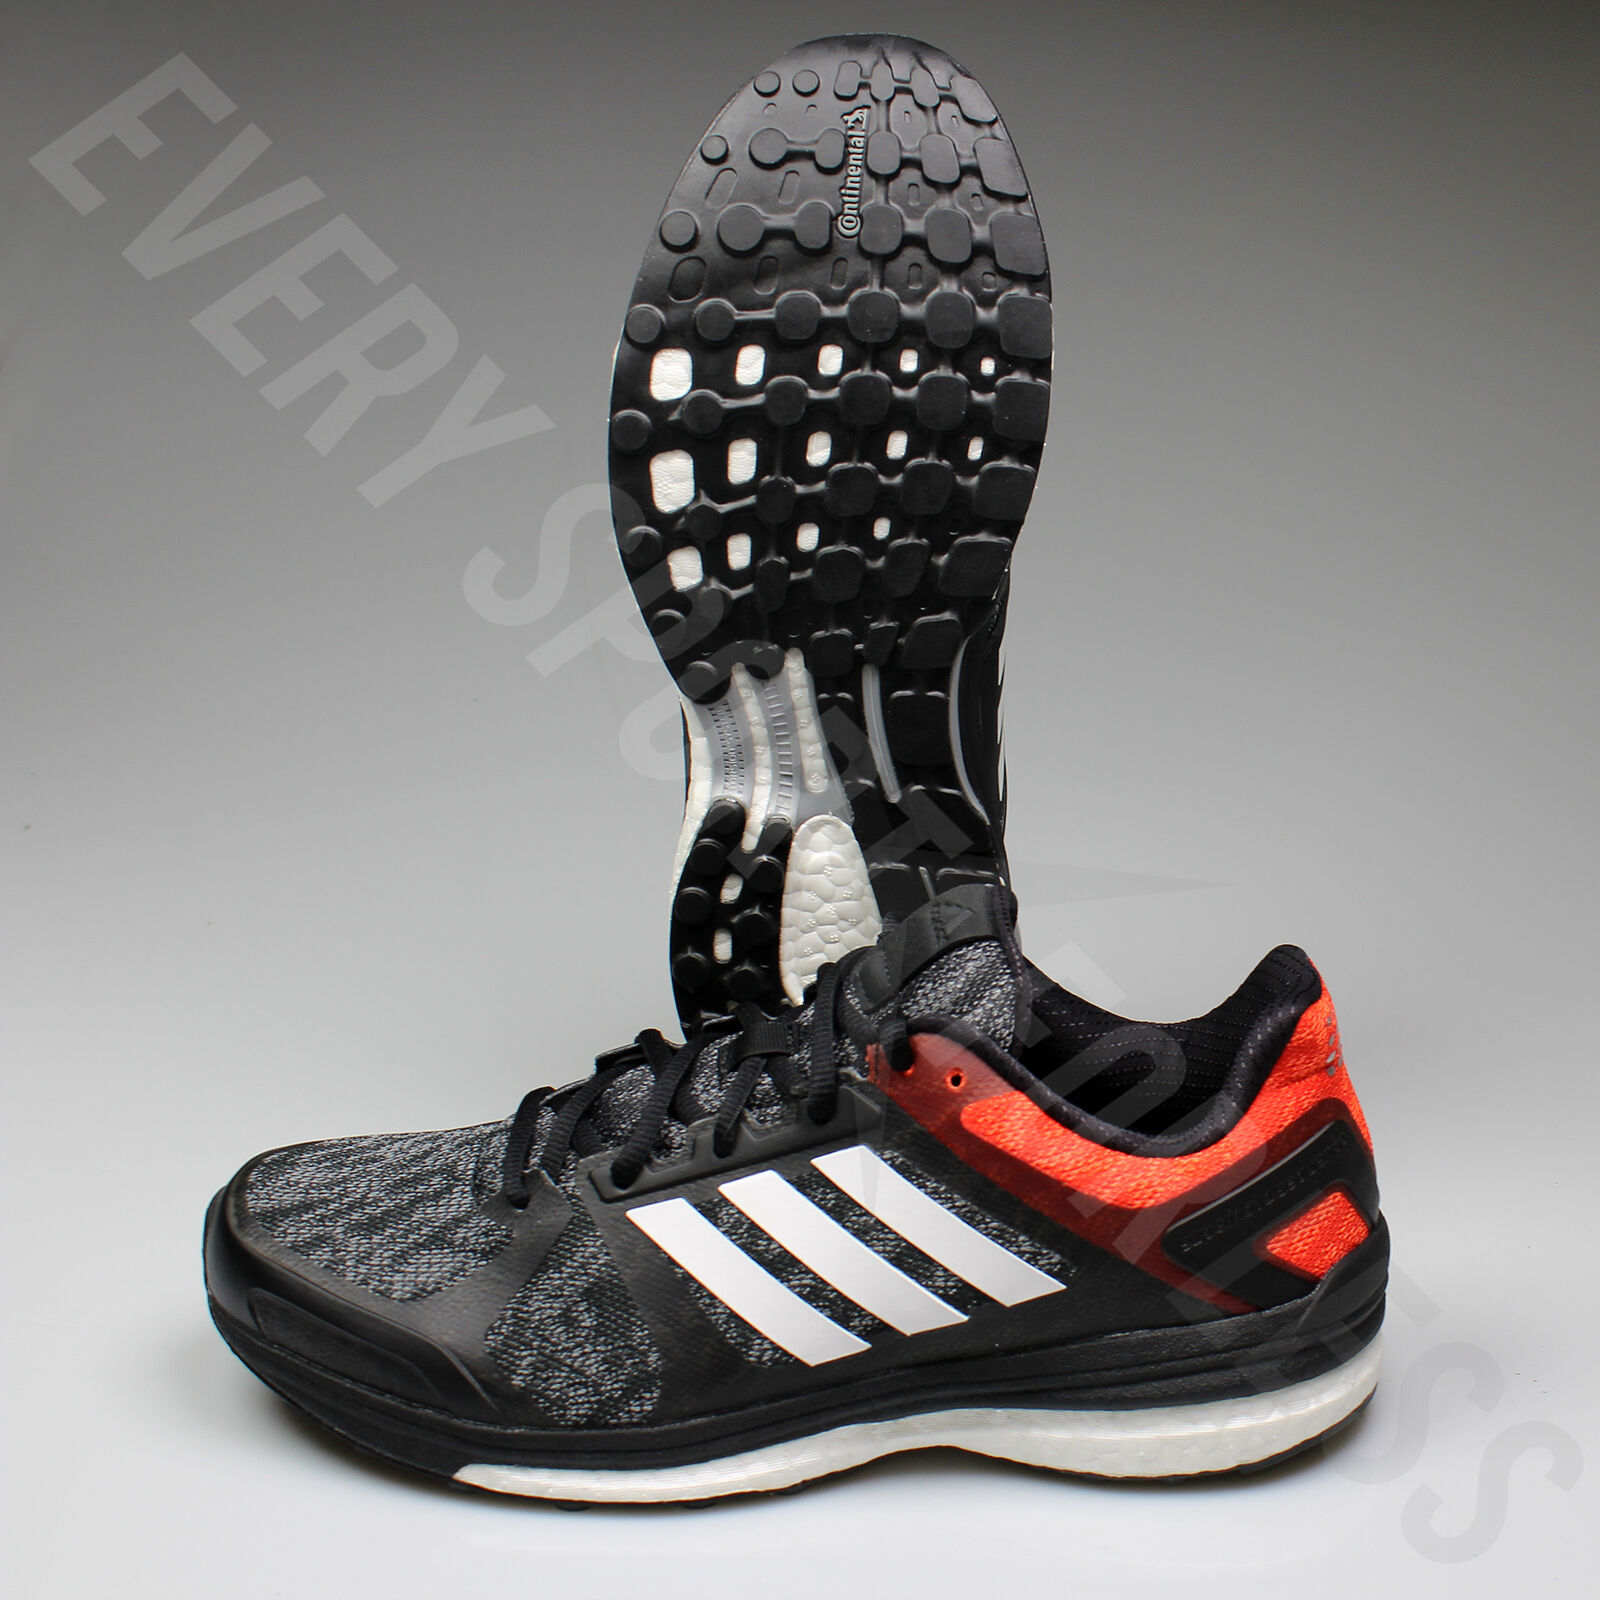 Adidas Supernova Sequence Running Shoes / Sneakers AQ3539 Price reduction Lists@ Price reduction Comfortable and good-looking